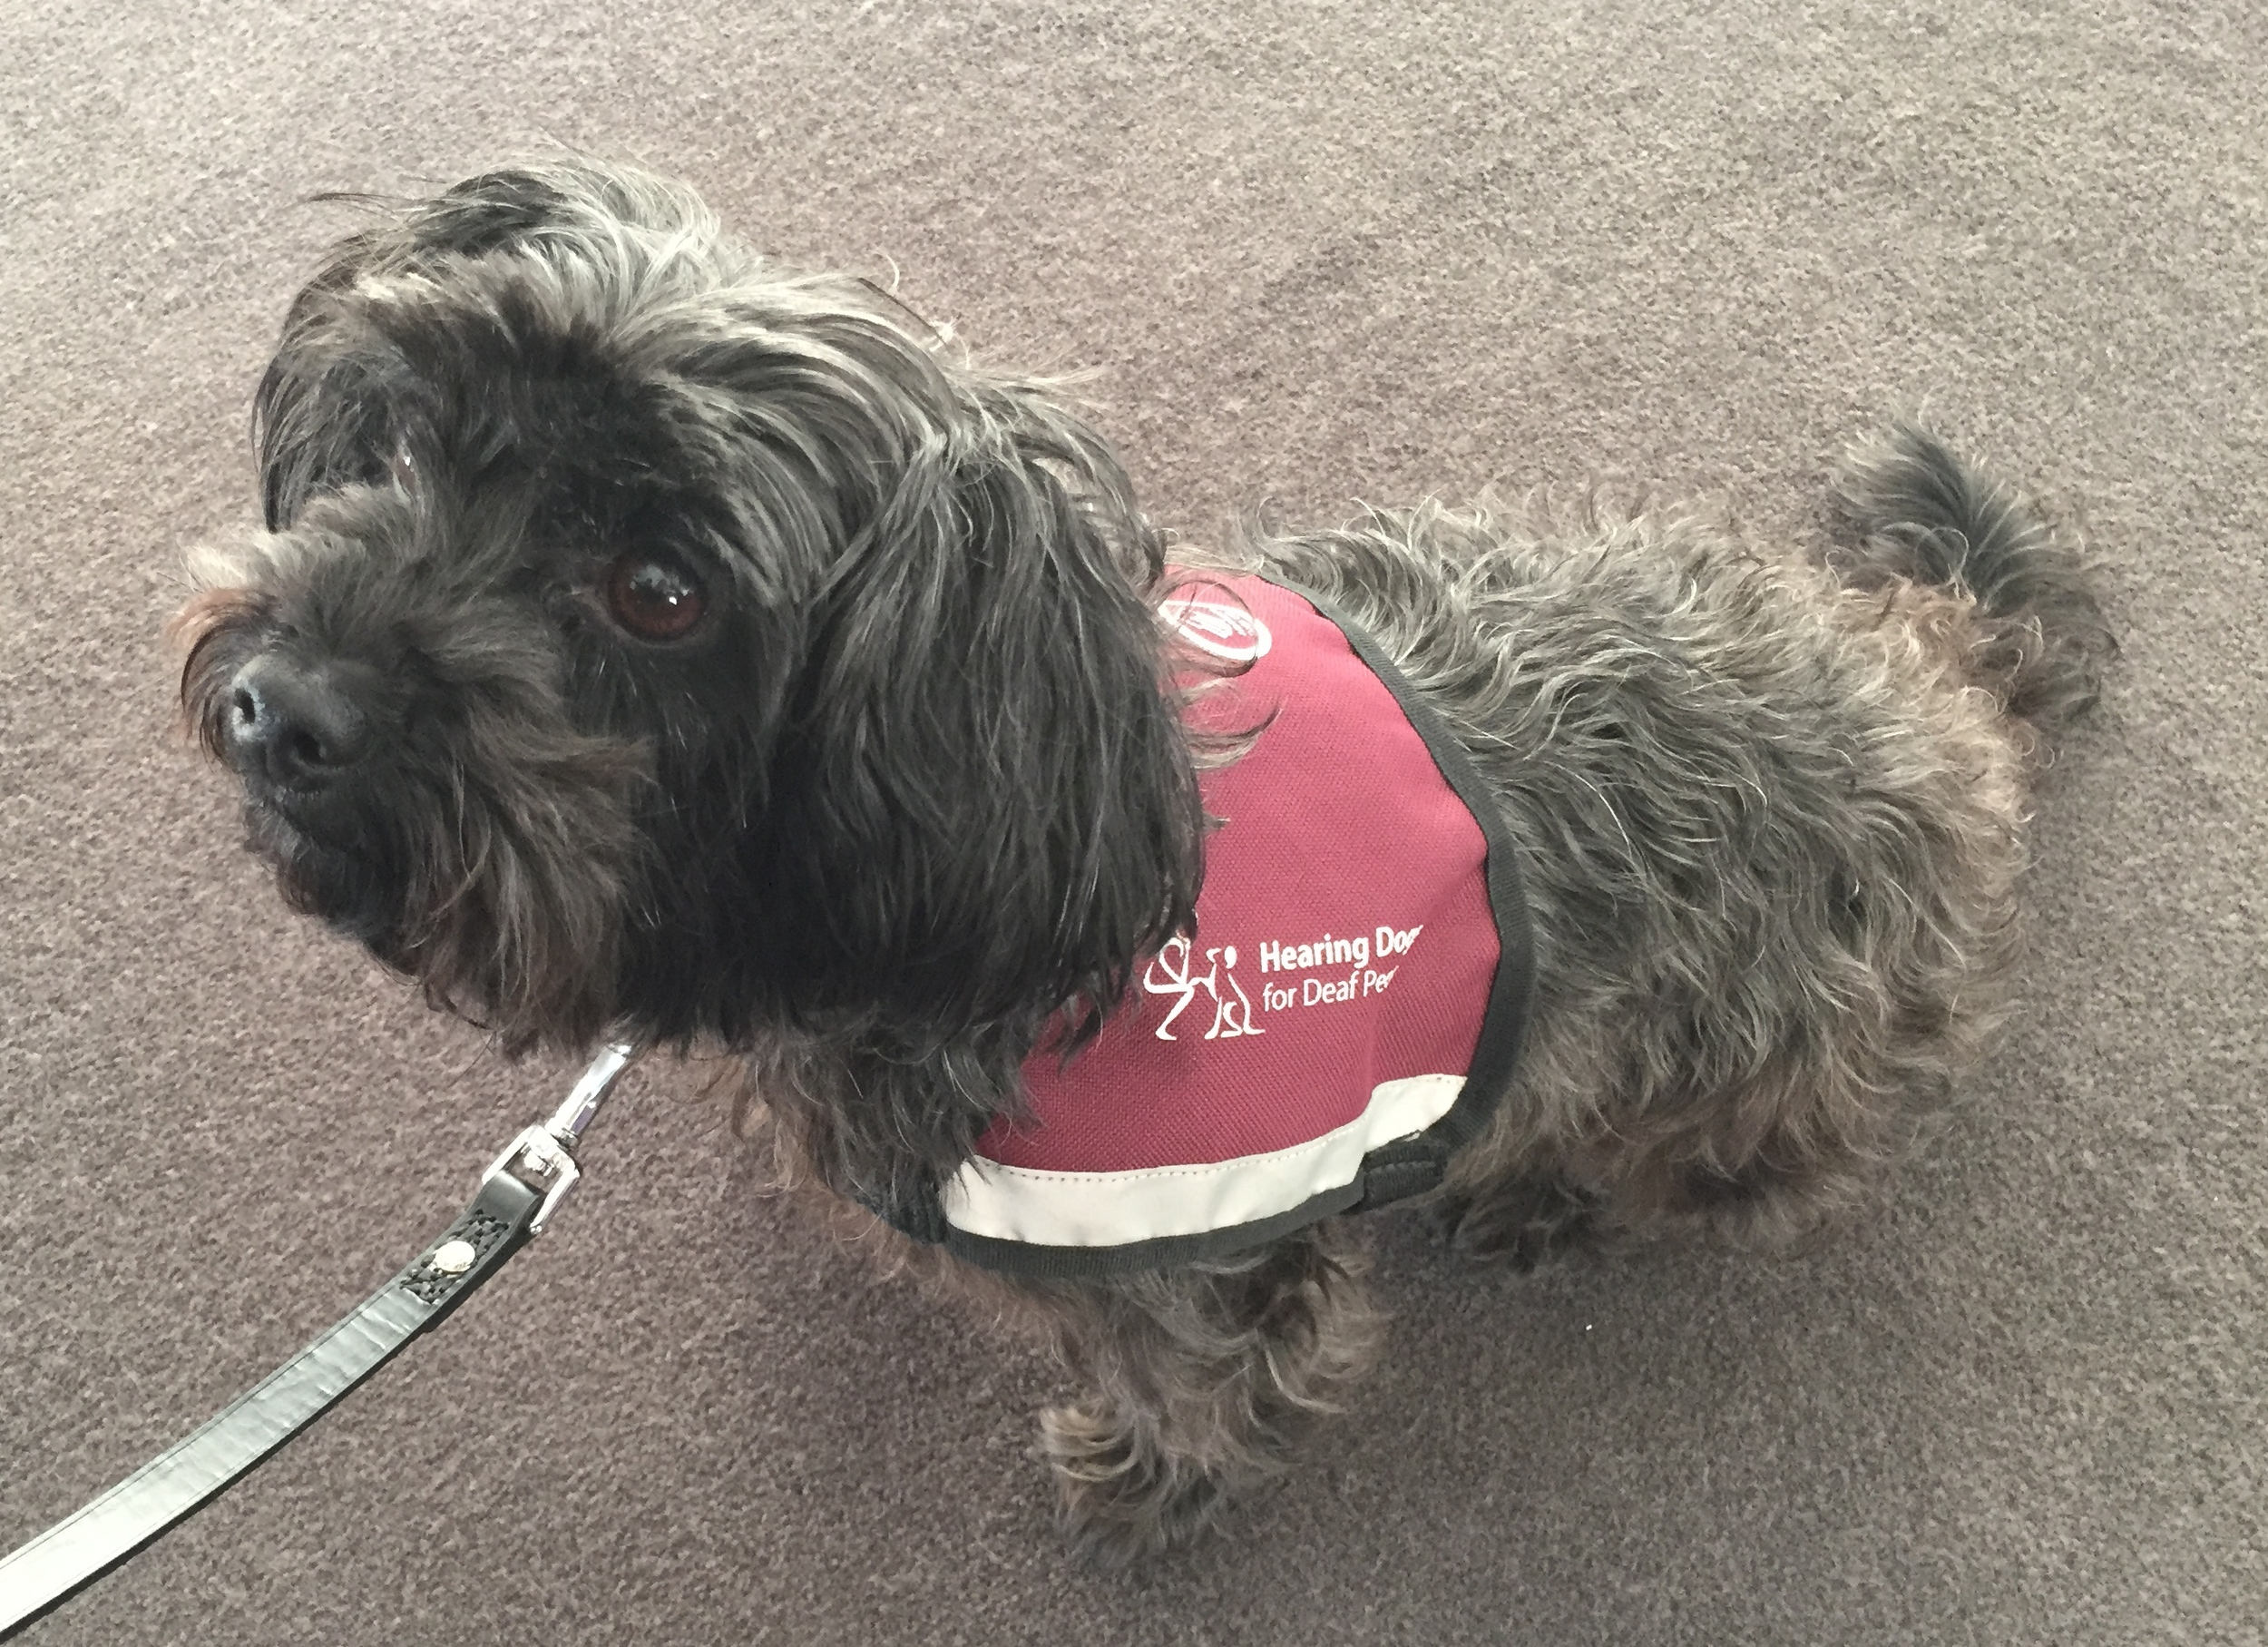 Gorgeous Hearing Dog helping at the Standard Life event for Scope at the Gherkin